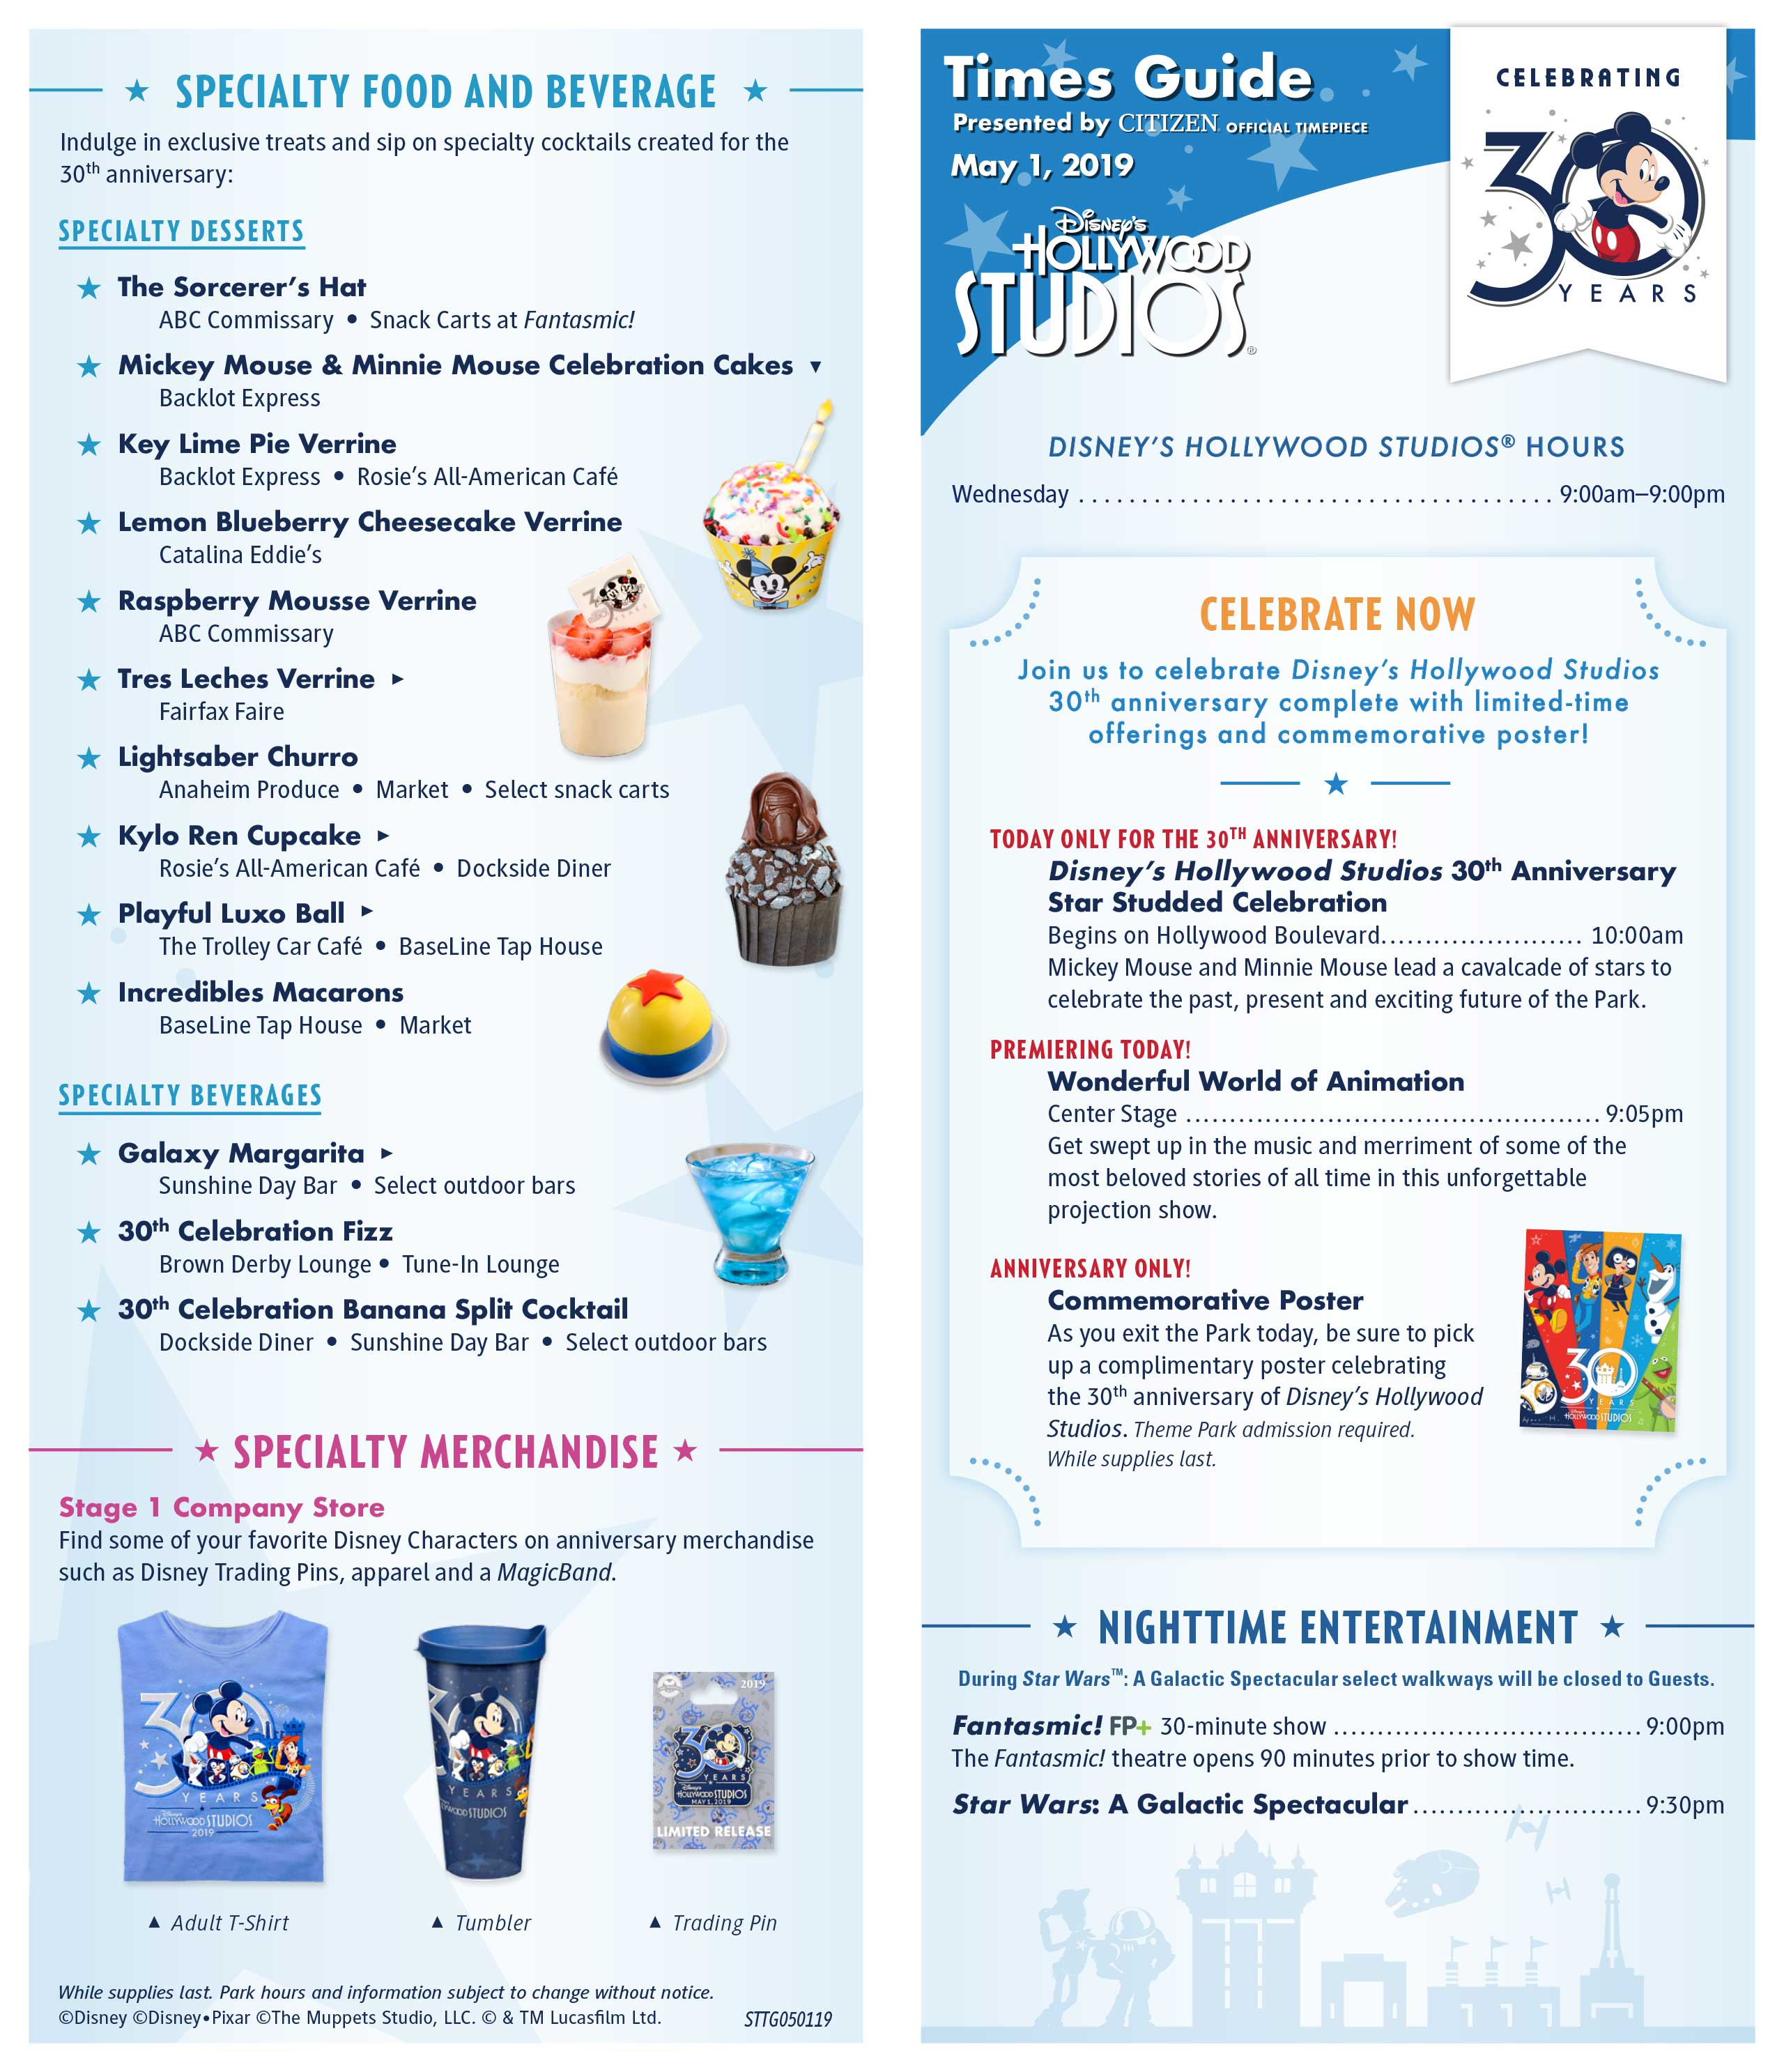 Disney's Hollywood Studios 30th Anniversary times guide